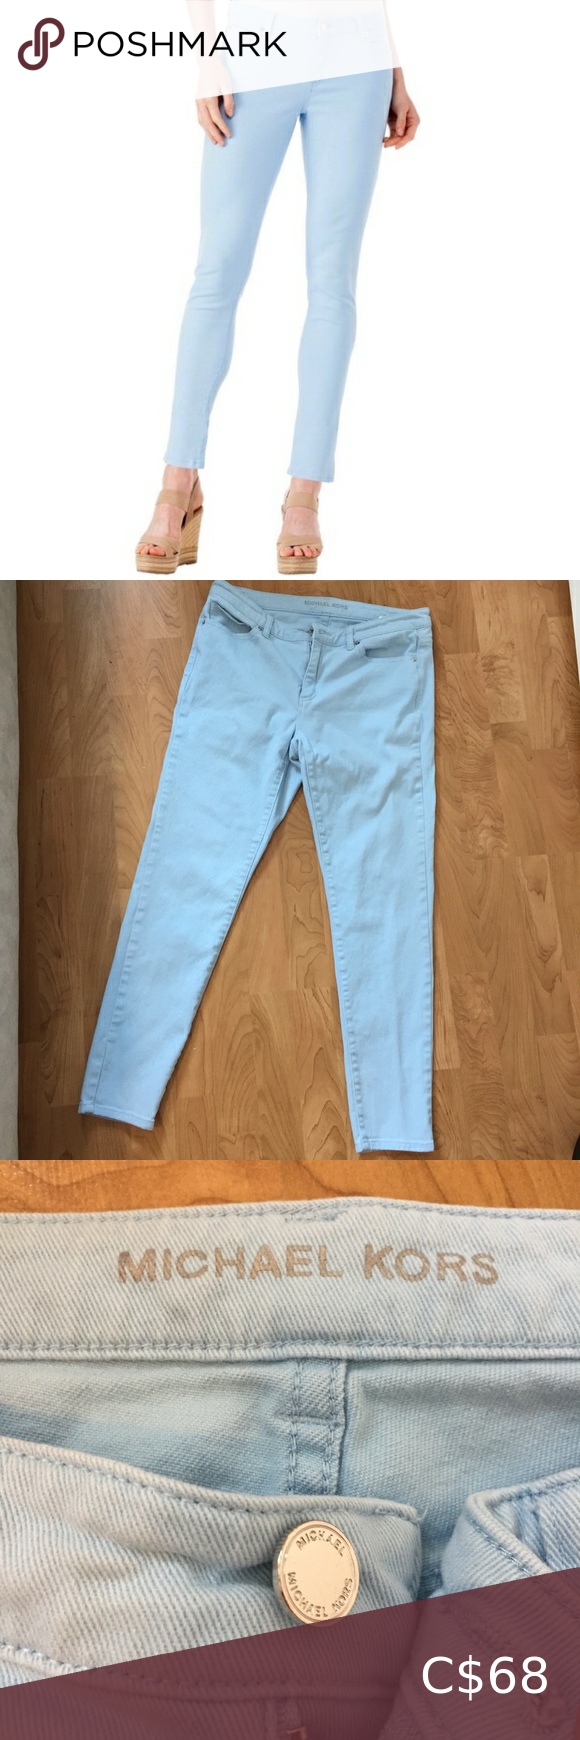 Michael Kors Light Skinny Pants